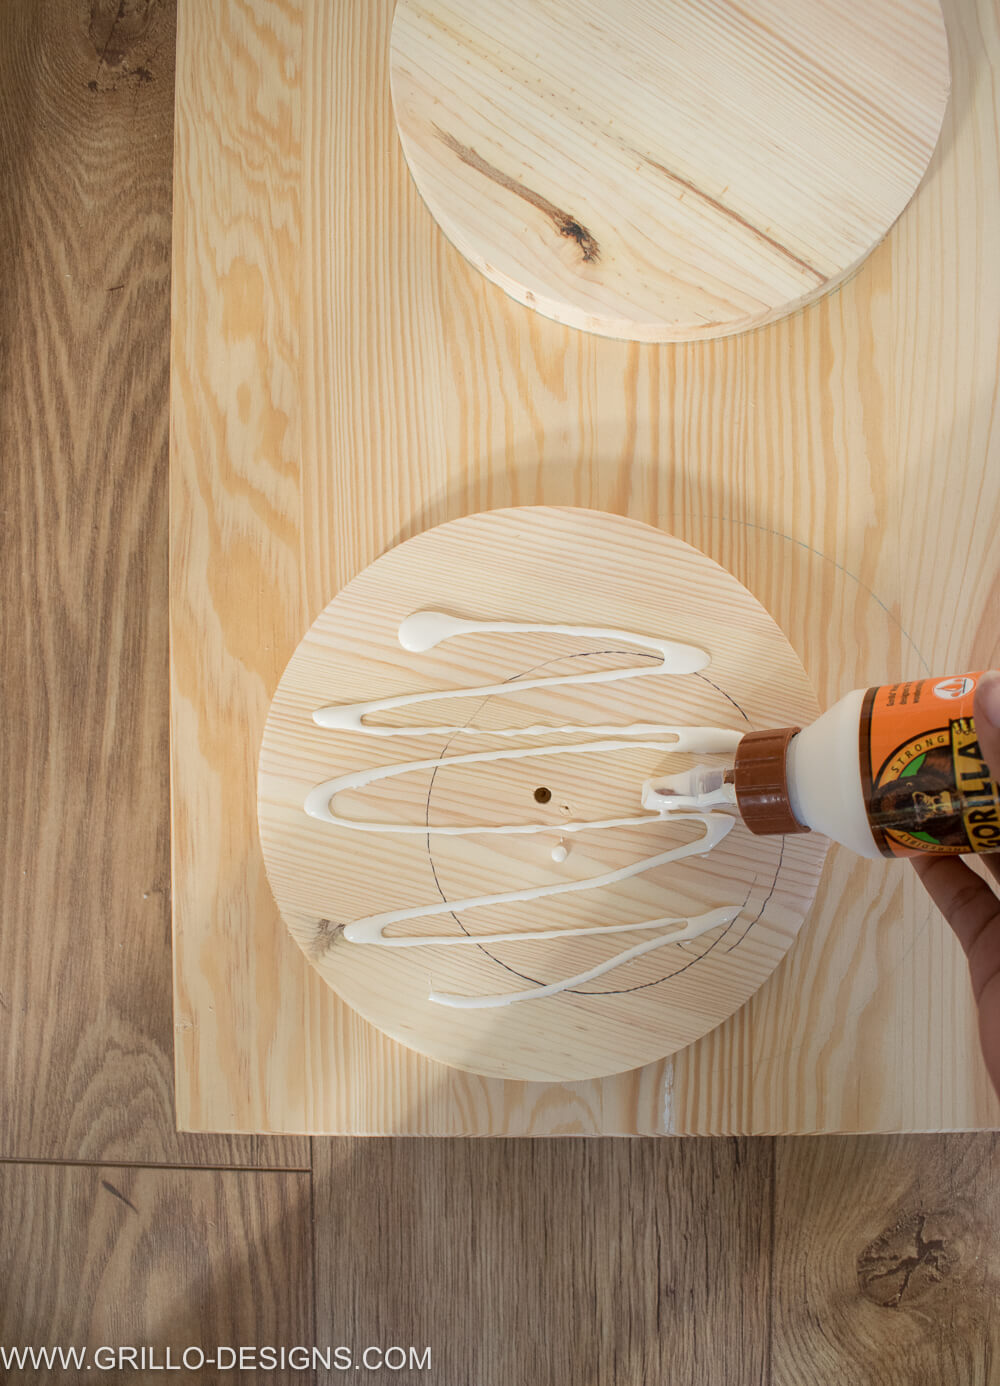 Apping wood glue to the back of the circles before sticking to the pine door